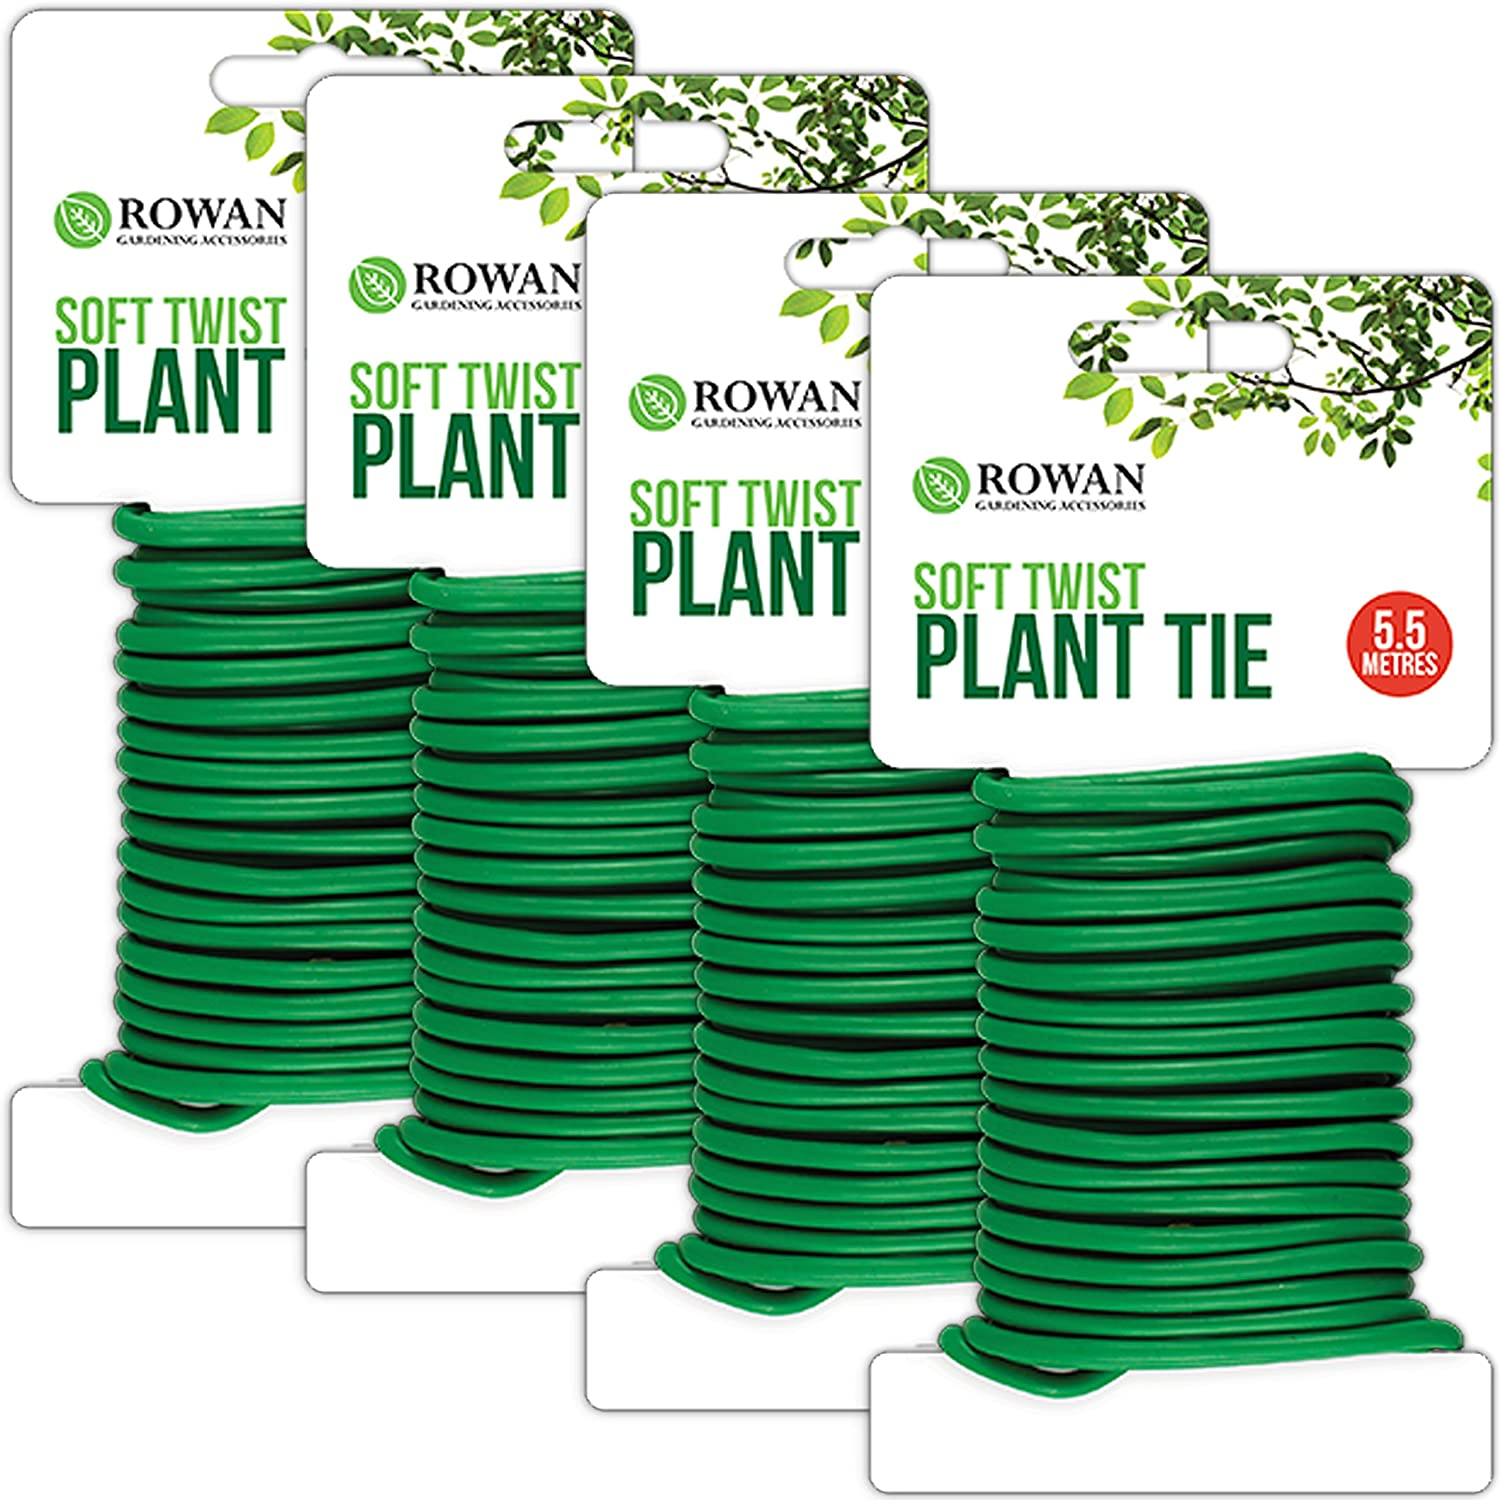 4x Rolls of 5.5m Soft Plant Support Tie Reusable Weatherproof Long Thick Garden Twist Wire | Reduces Damage To Plants & Stems White Hinge